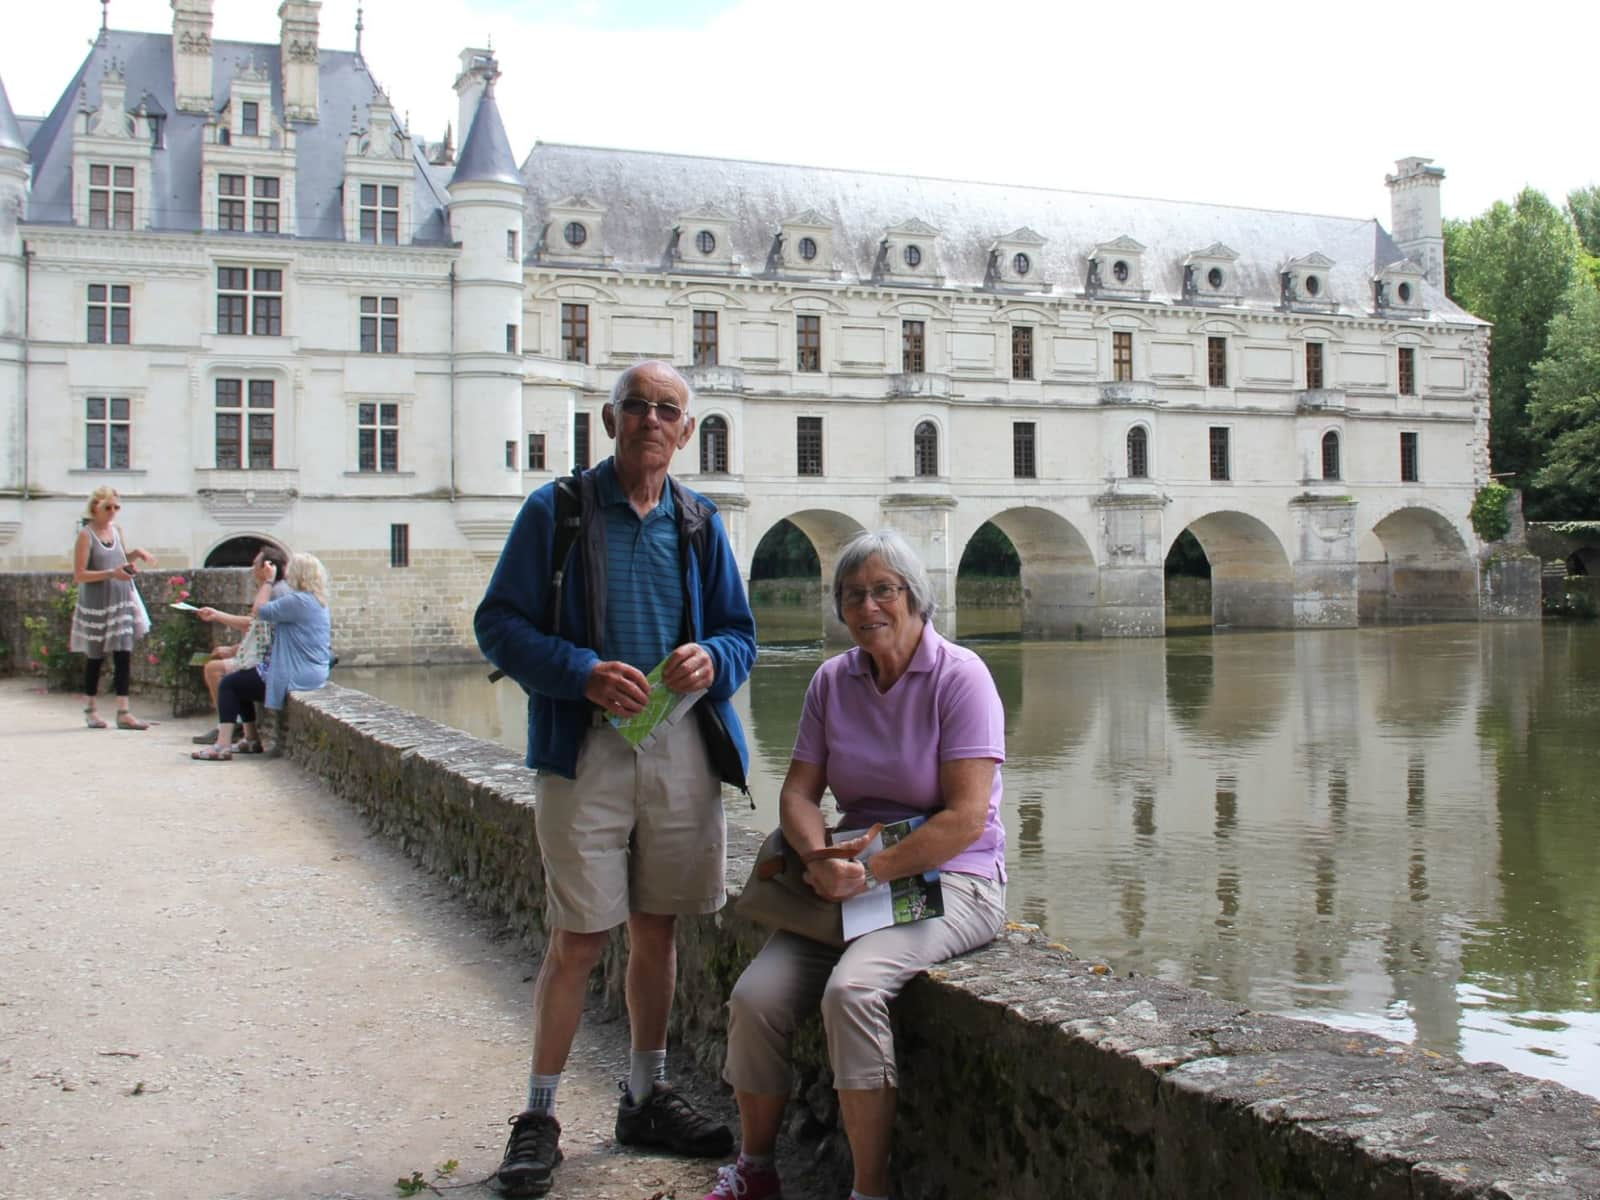 Shirley & Dan from Salviac, France